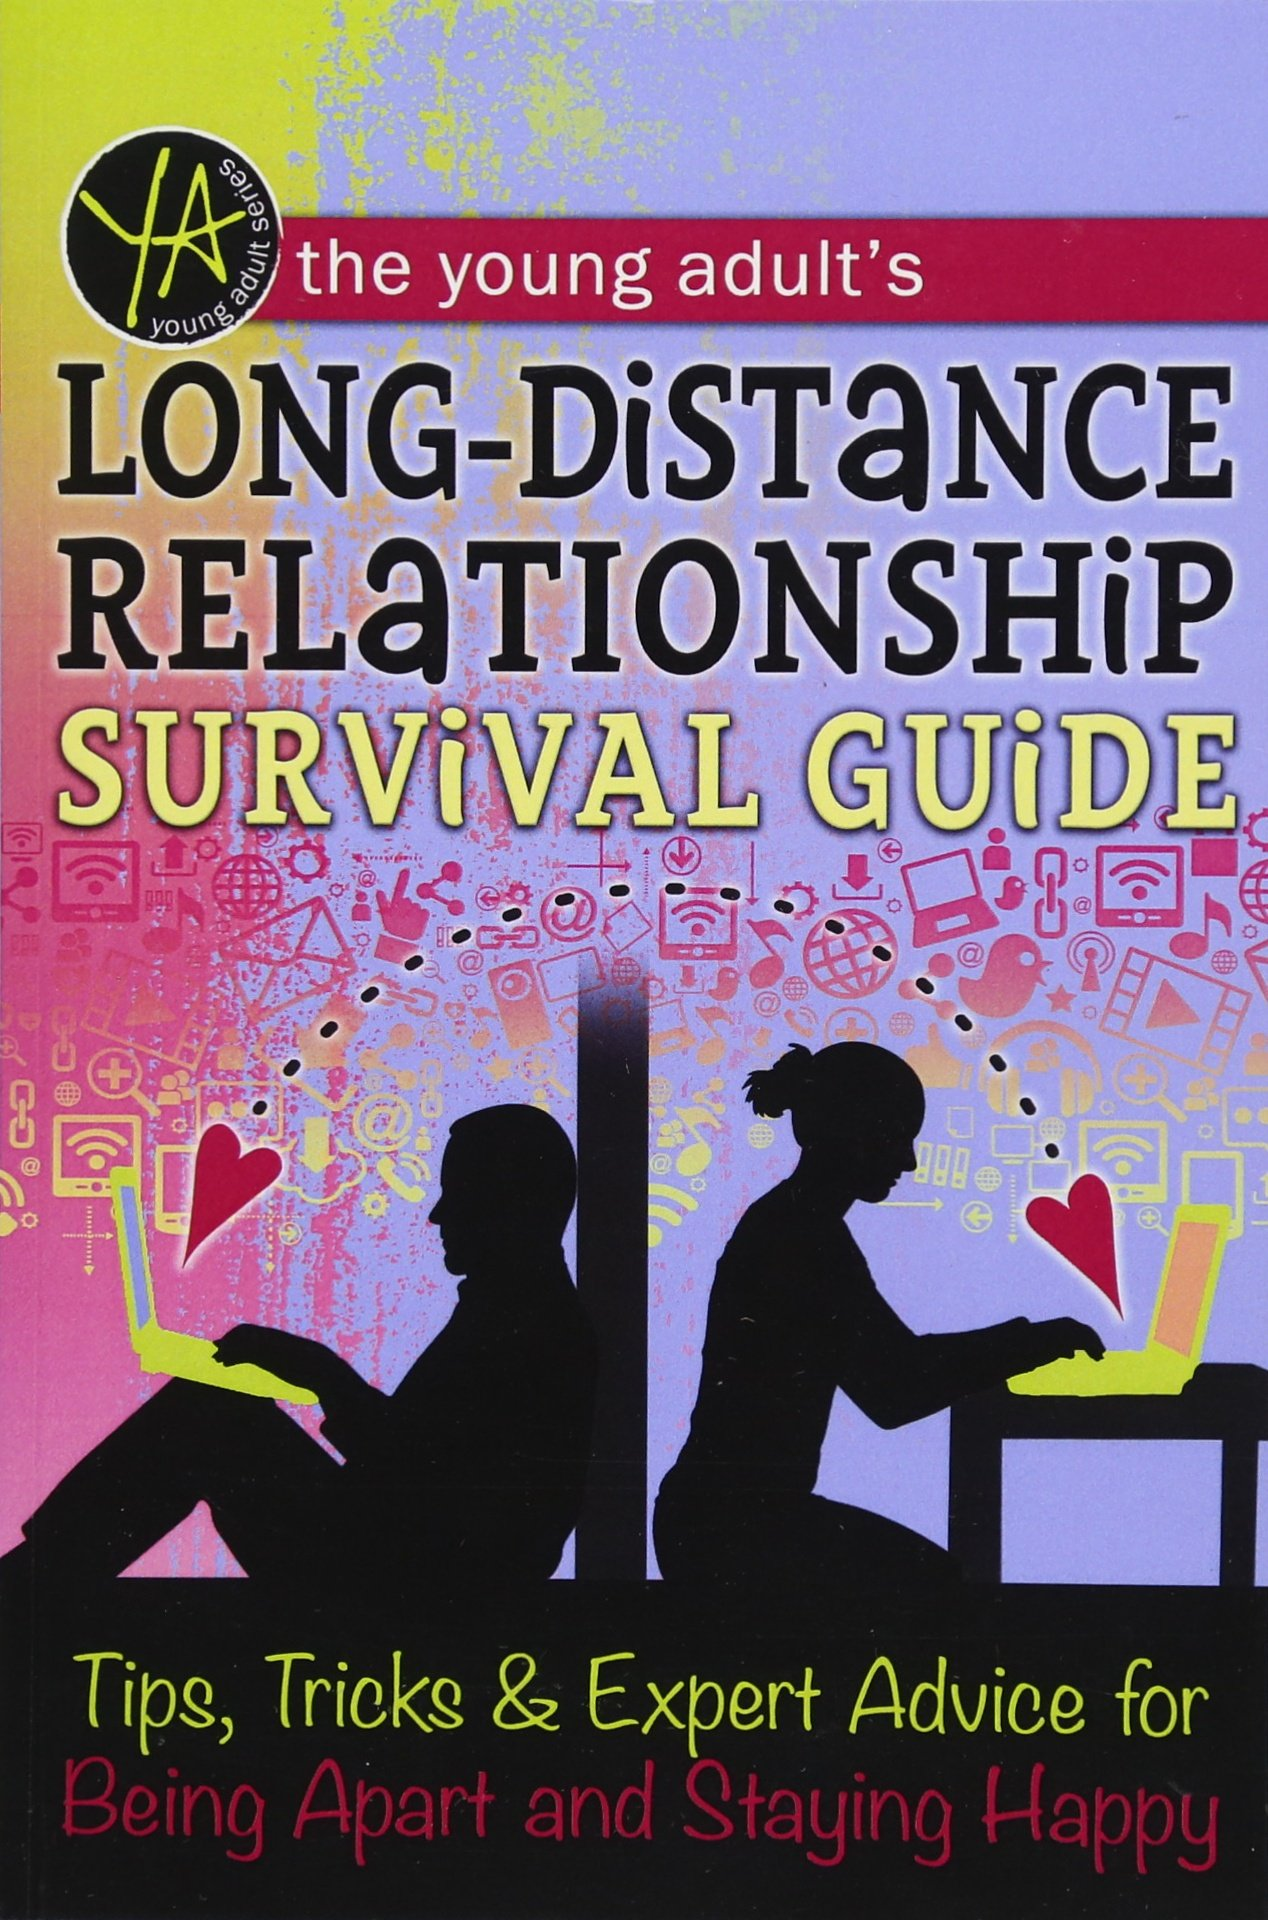 Download The Young Adult's Long-Distance Relationship Survival Guide: Tips, Tricks & Expert Advice for Being Apart and Staying Happy: Tips, Tricks & Expert Advice for Being Apart and Staying Happy pdf